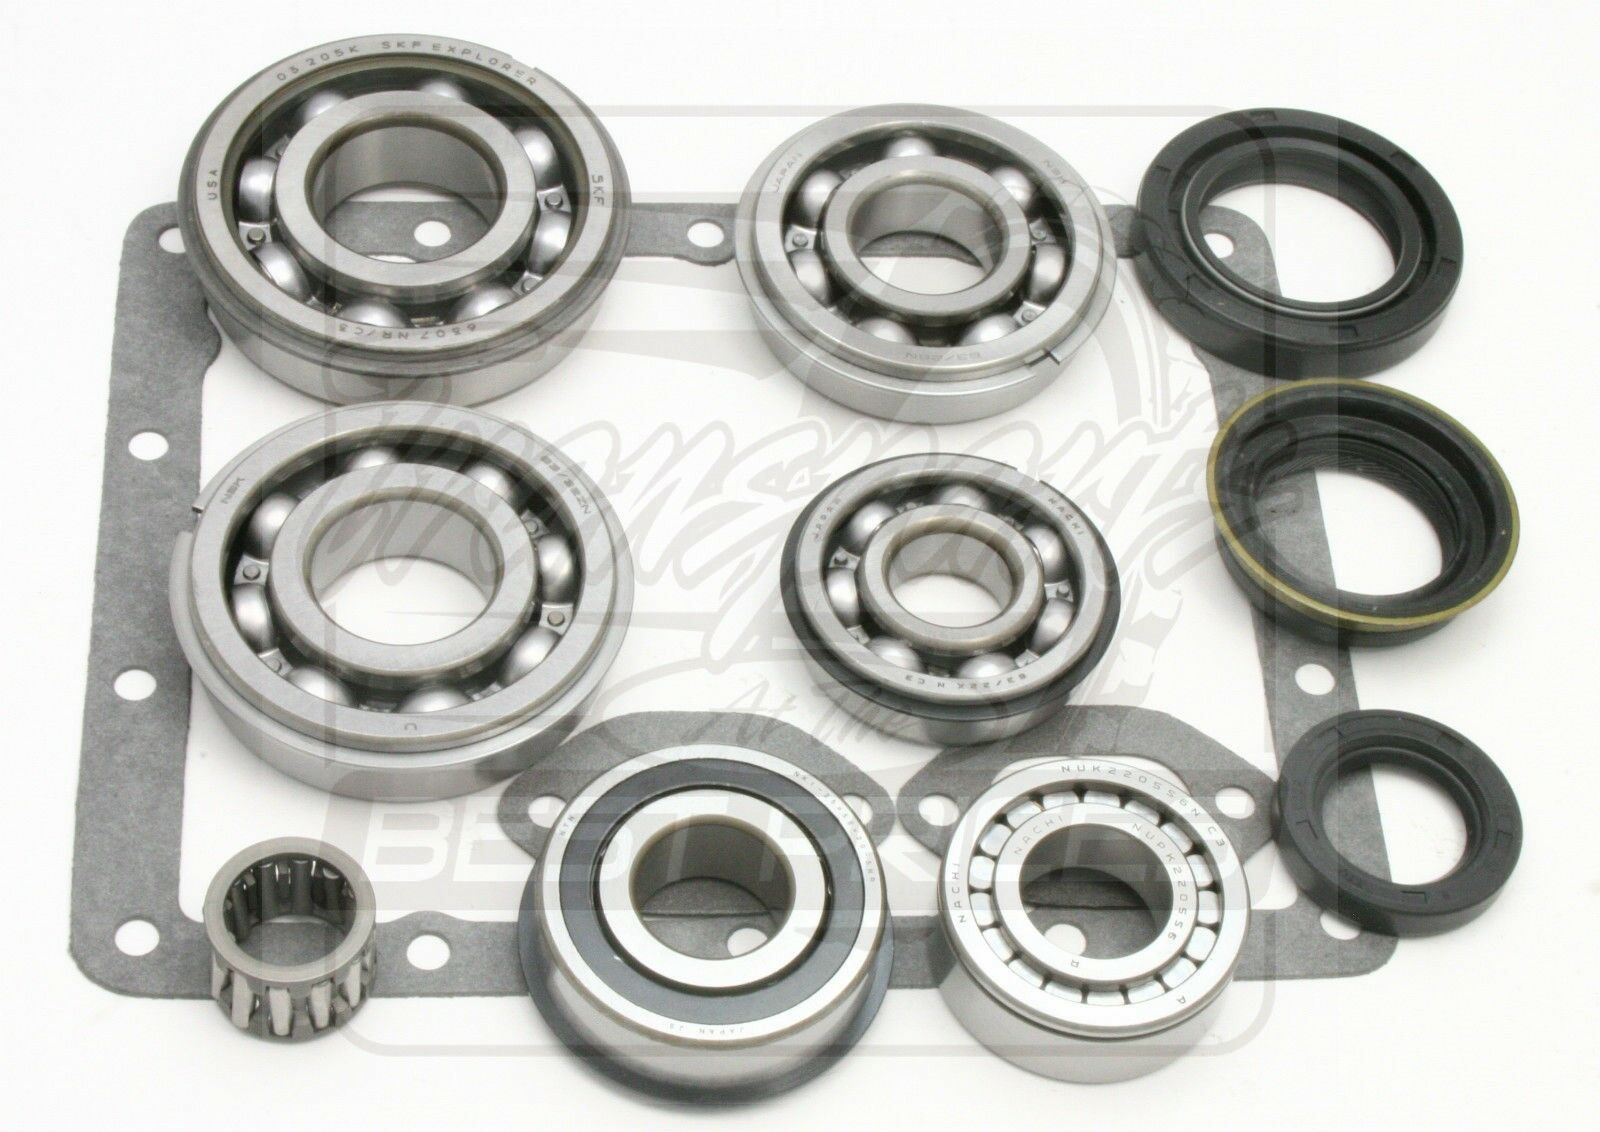 Mazda 5 Spd Transmission Trans Bearing Rebuild Overhaul Kit 1987 95 Suzuki Samurai Gearbox 1 Of See More